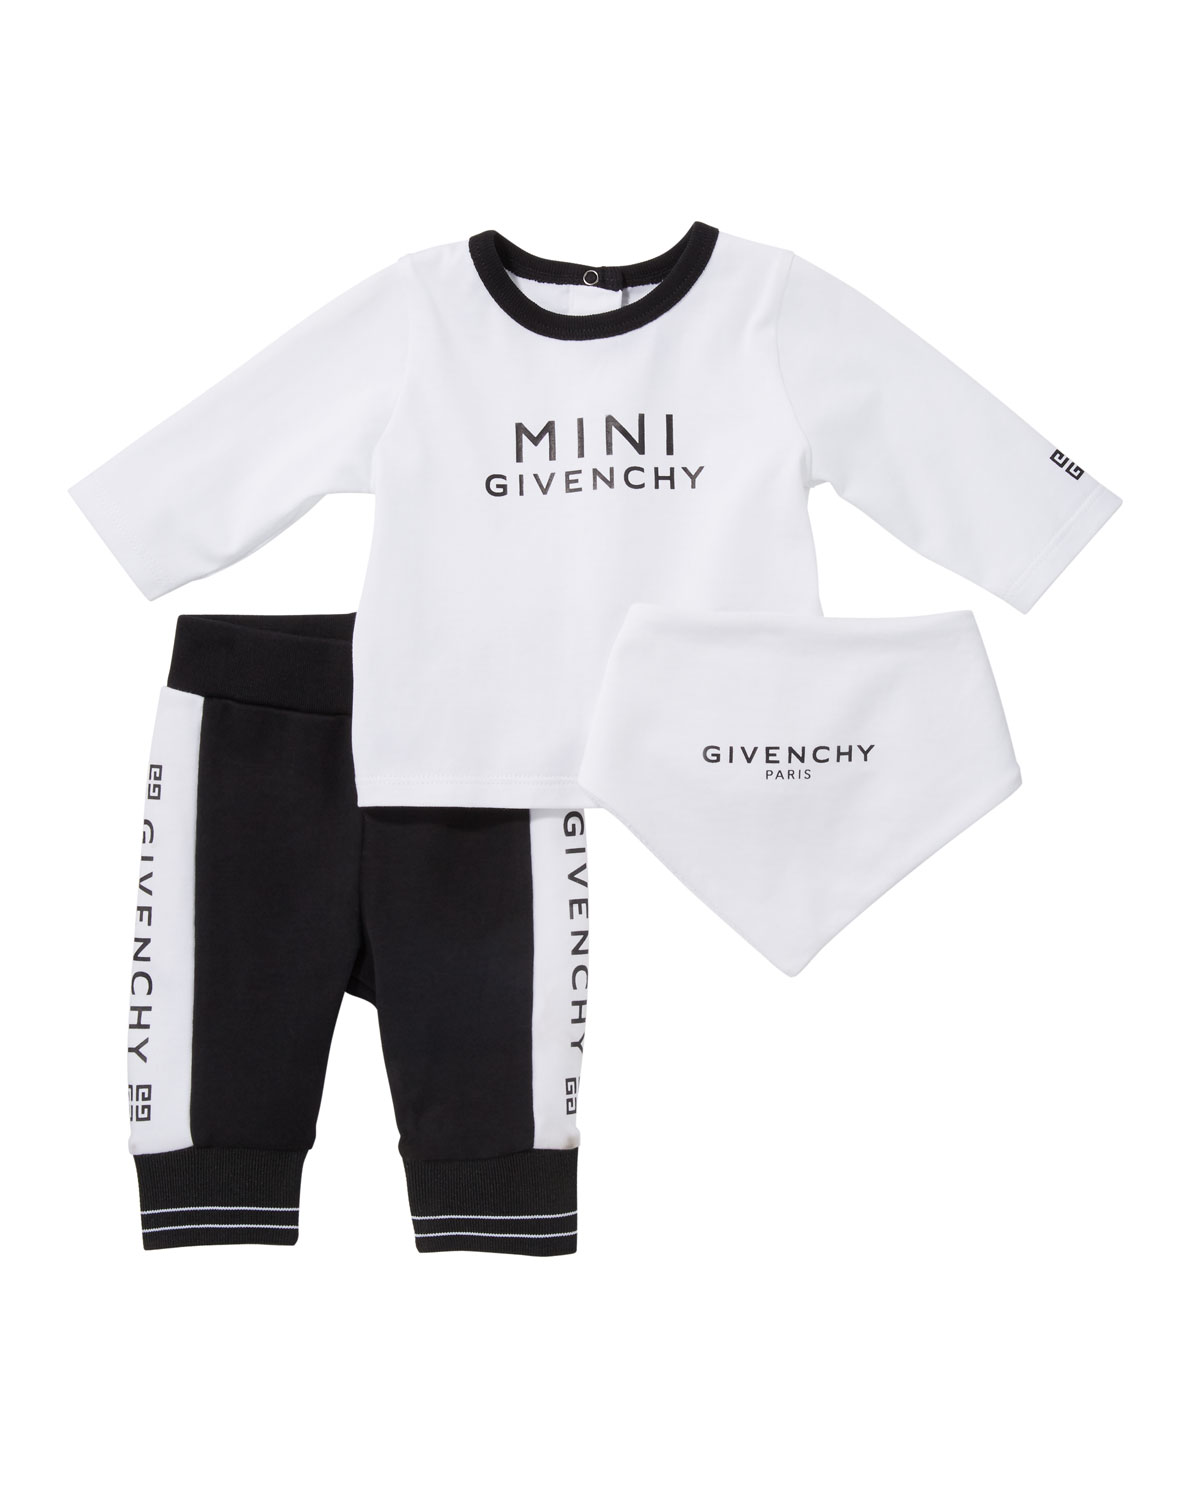 Logo Long Sleeve Tee Pant & Bib 3 Piece Layette Set, Size 3 18 Months by Givenchy